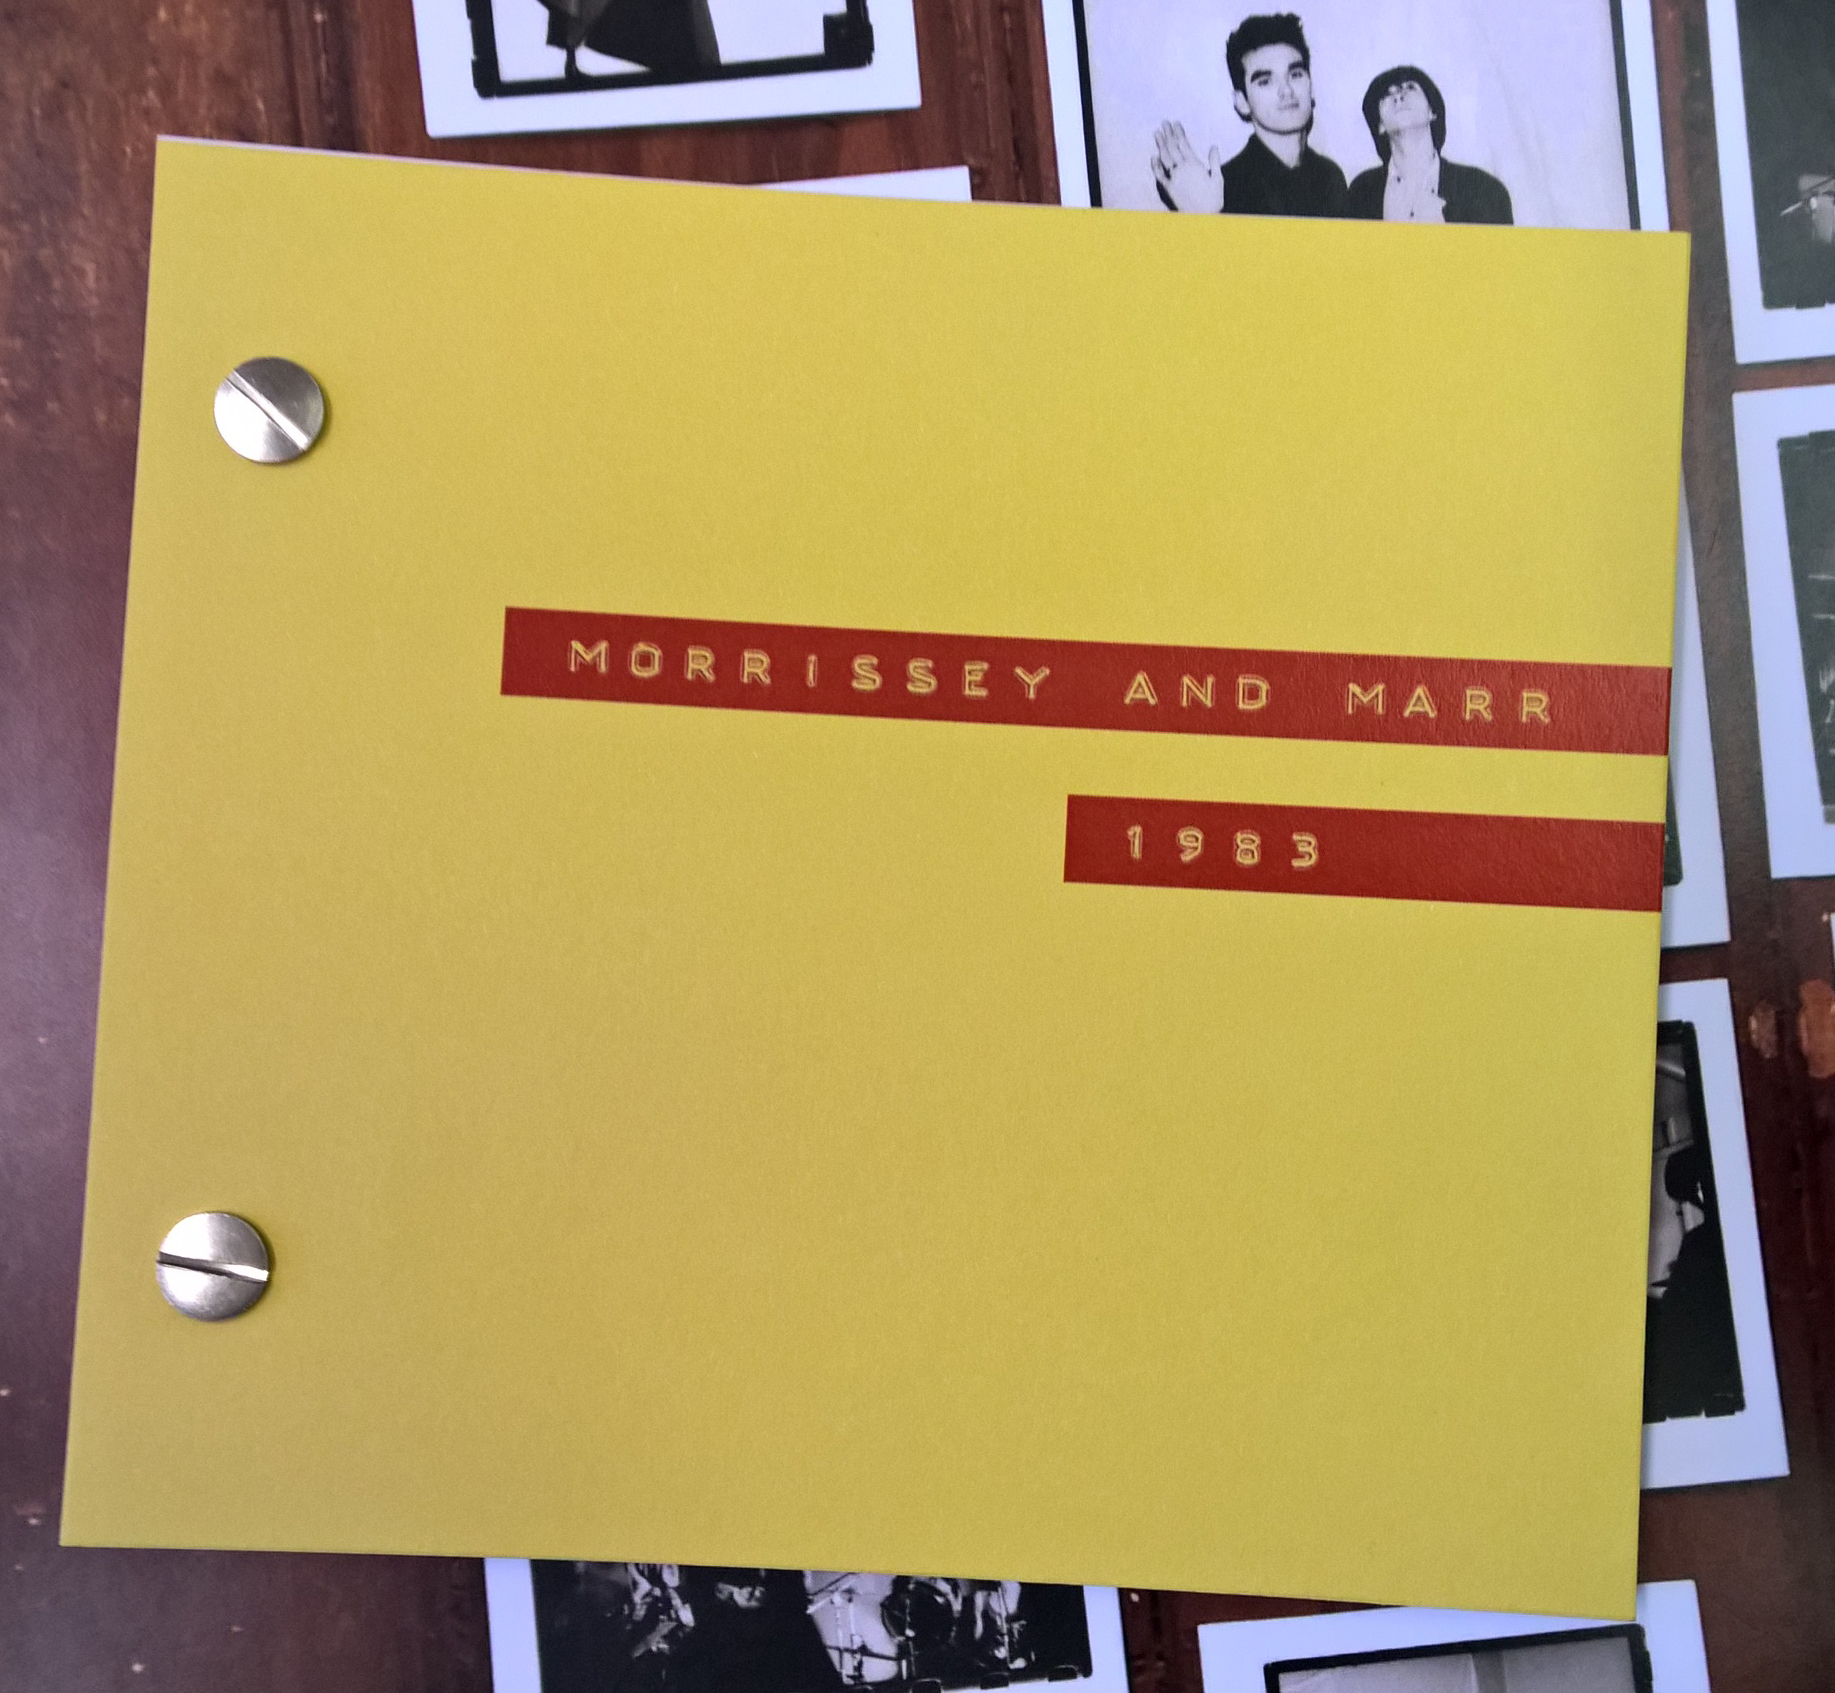 Unseen photographs of The Smiths dating to 1983. Photographs by Colin Howe. Book published by the Salford Lads Club.